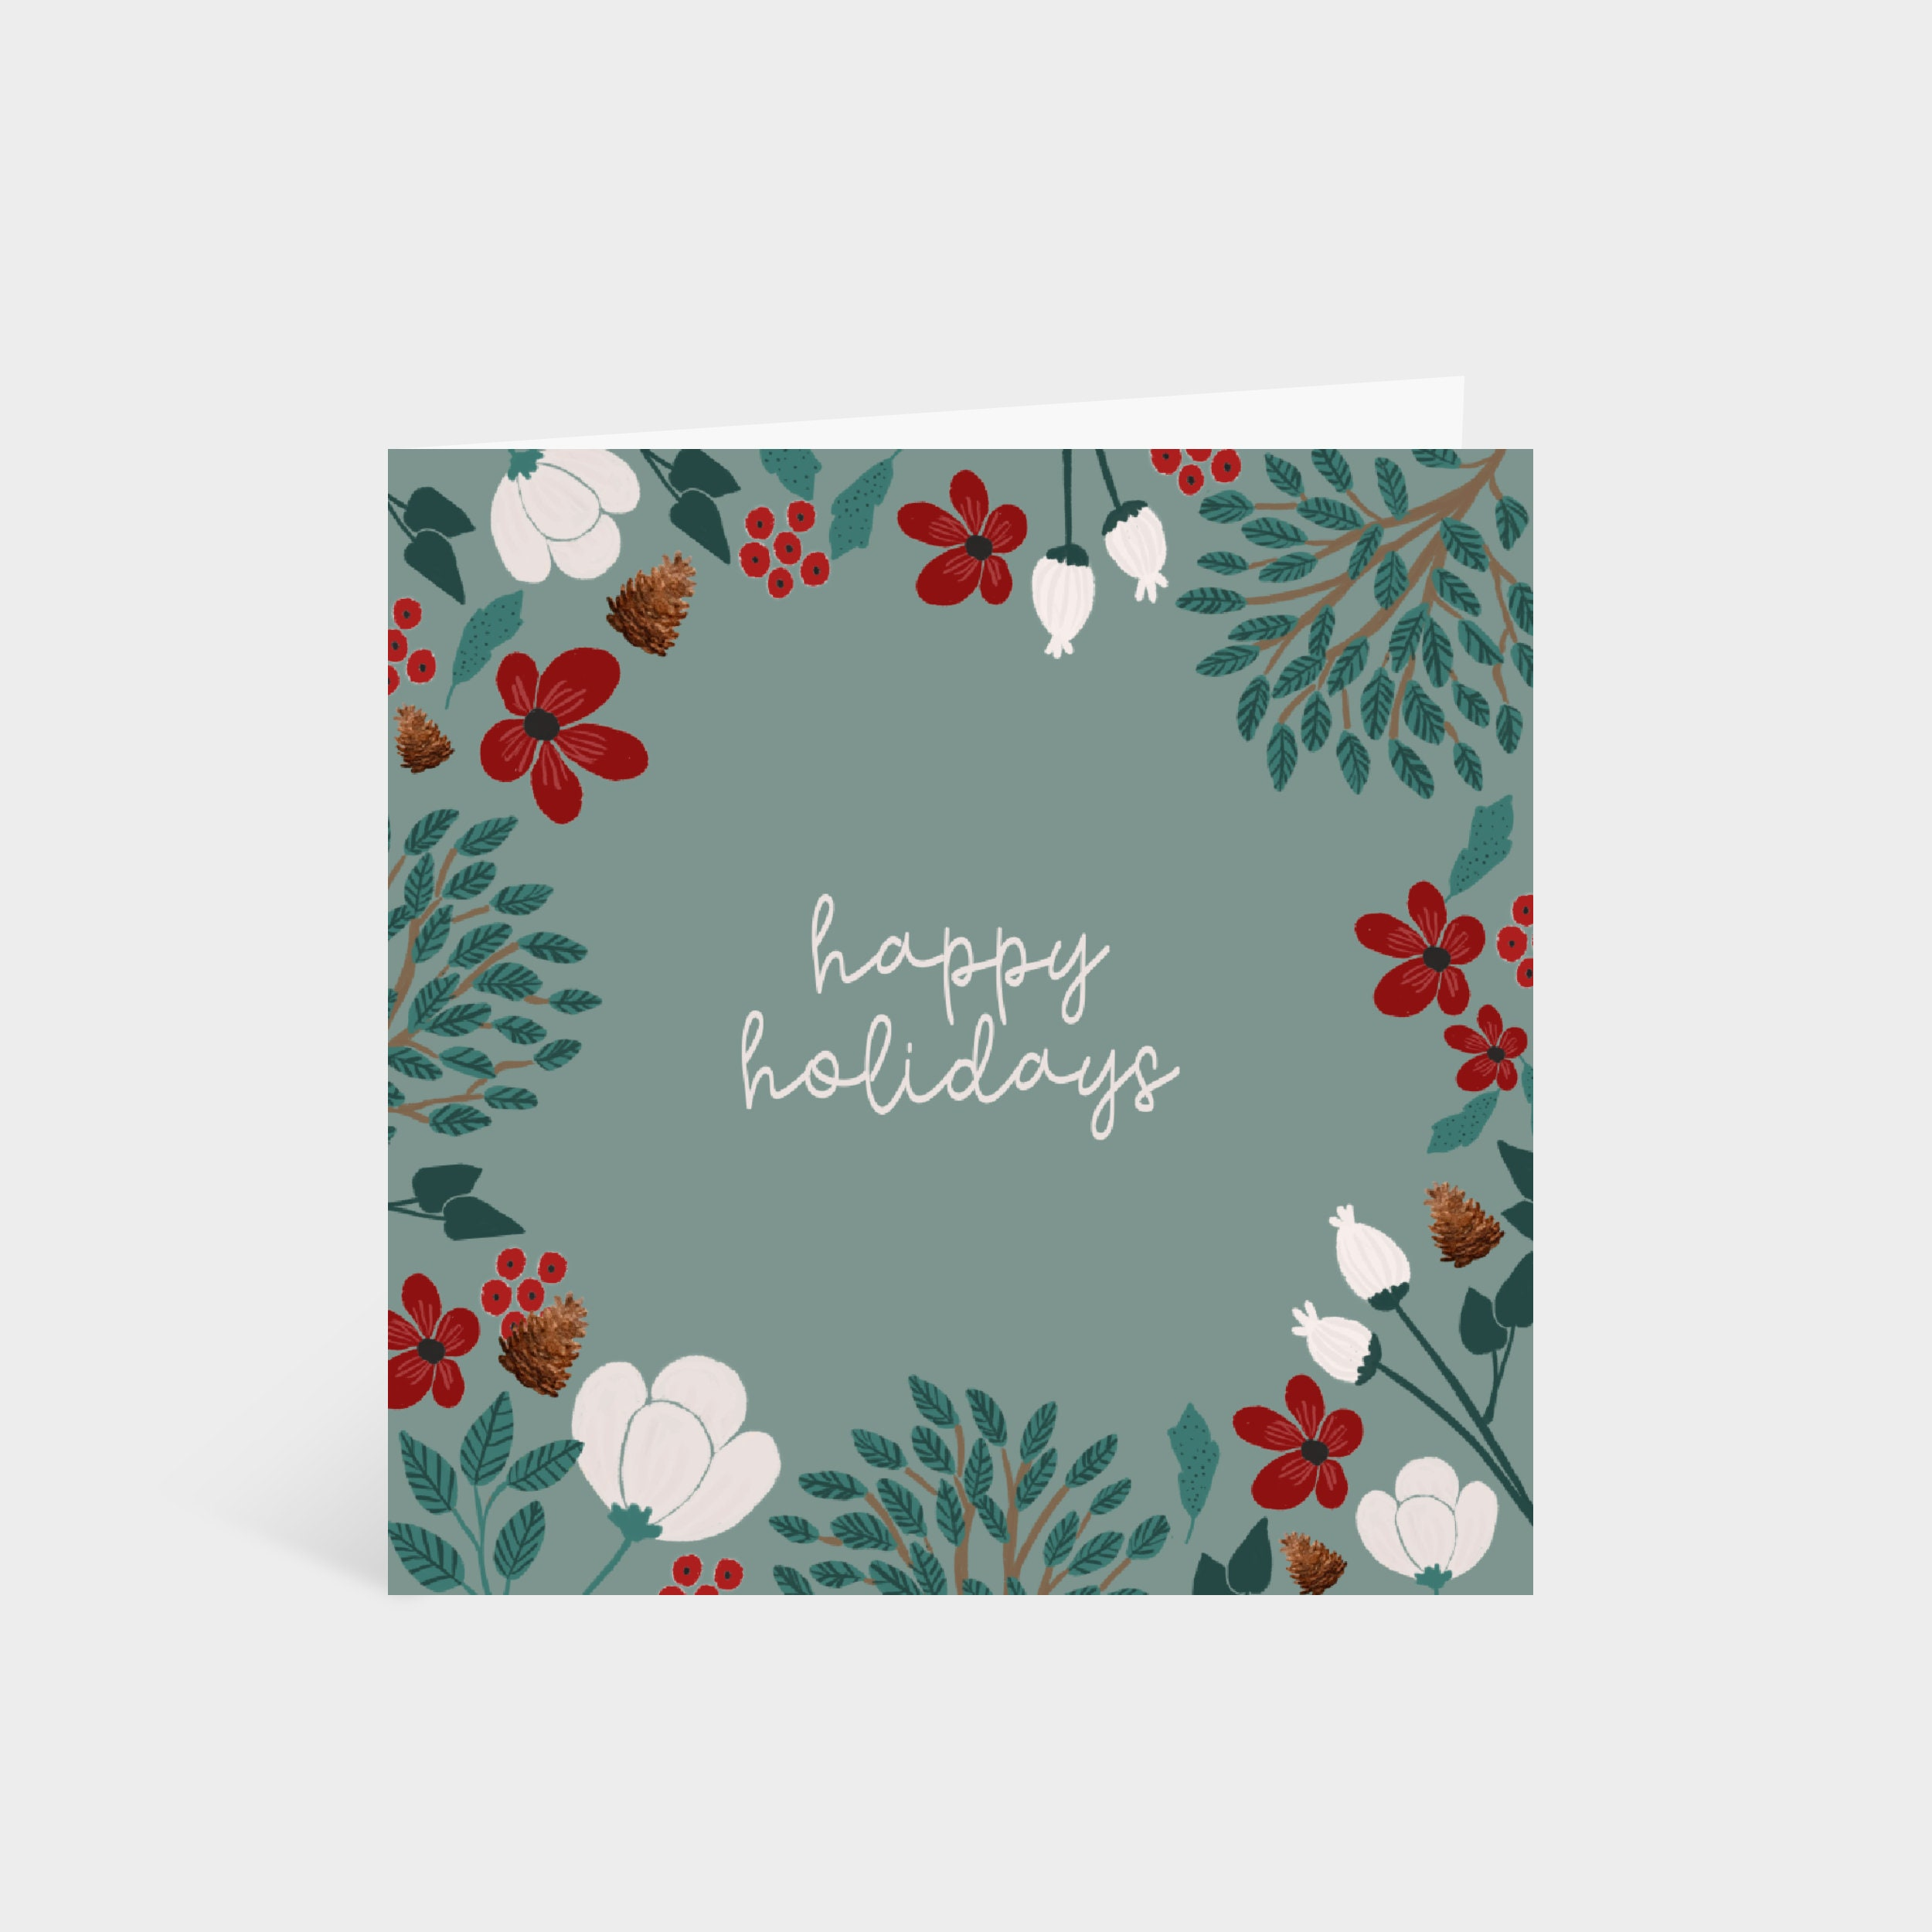 Standing square green card with a border of winter foliage and flowers, and the words 'Happy Holidays' in the centre